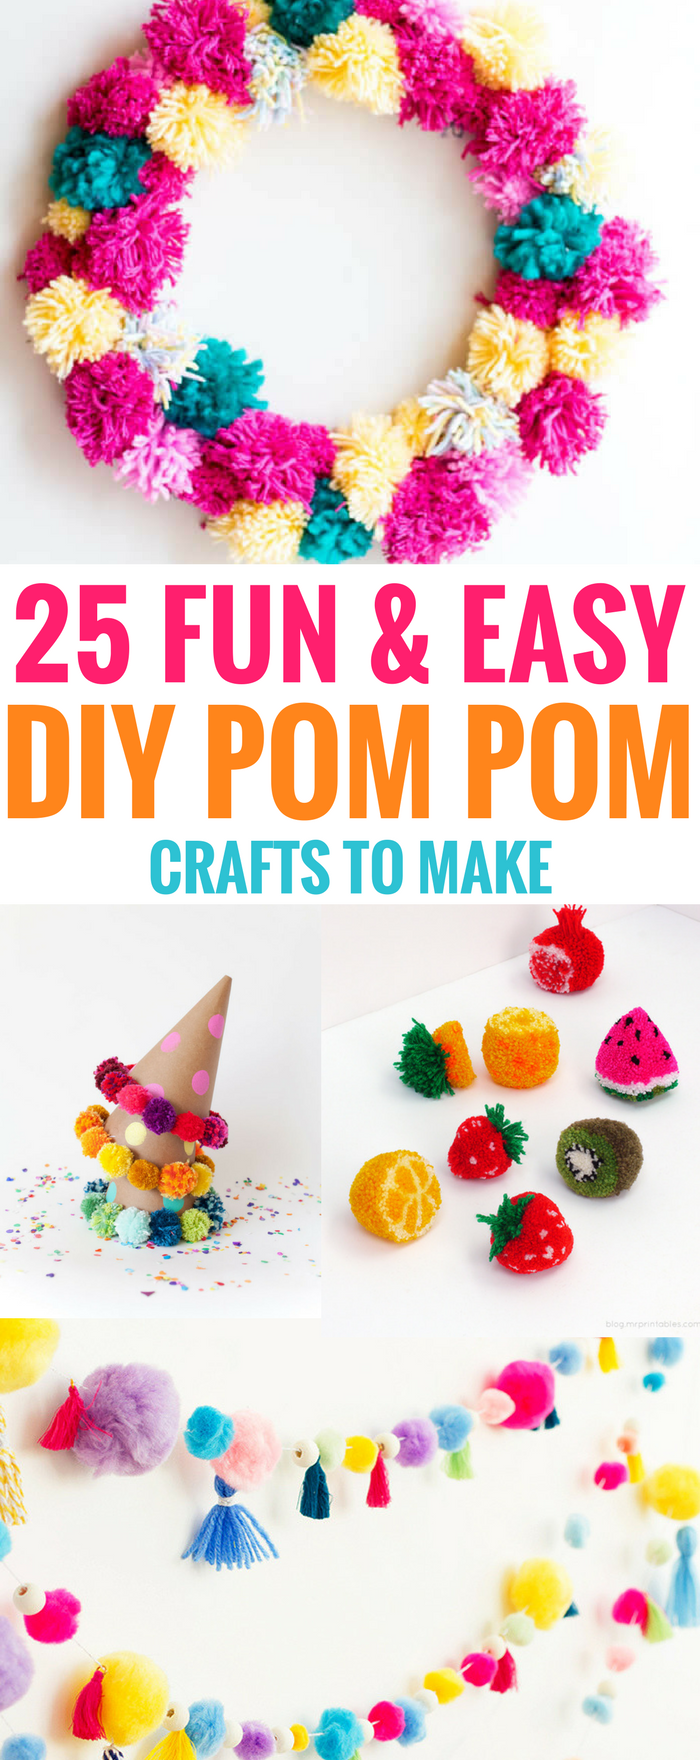 craft ideas easy to make 25 and easy diy pom pom crafts to make 6120